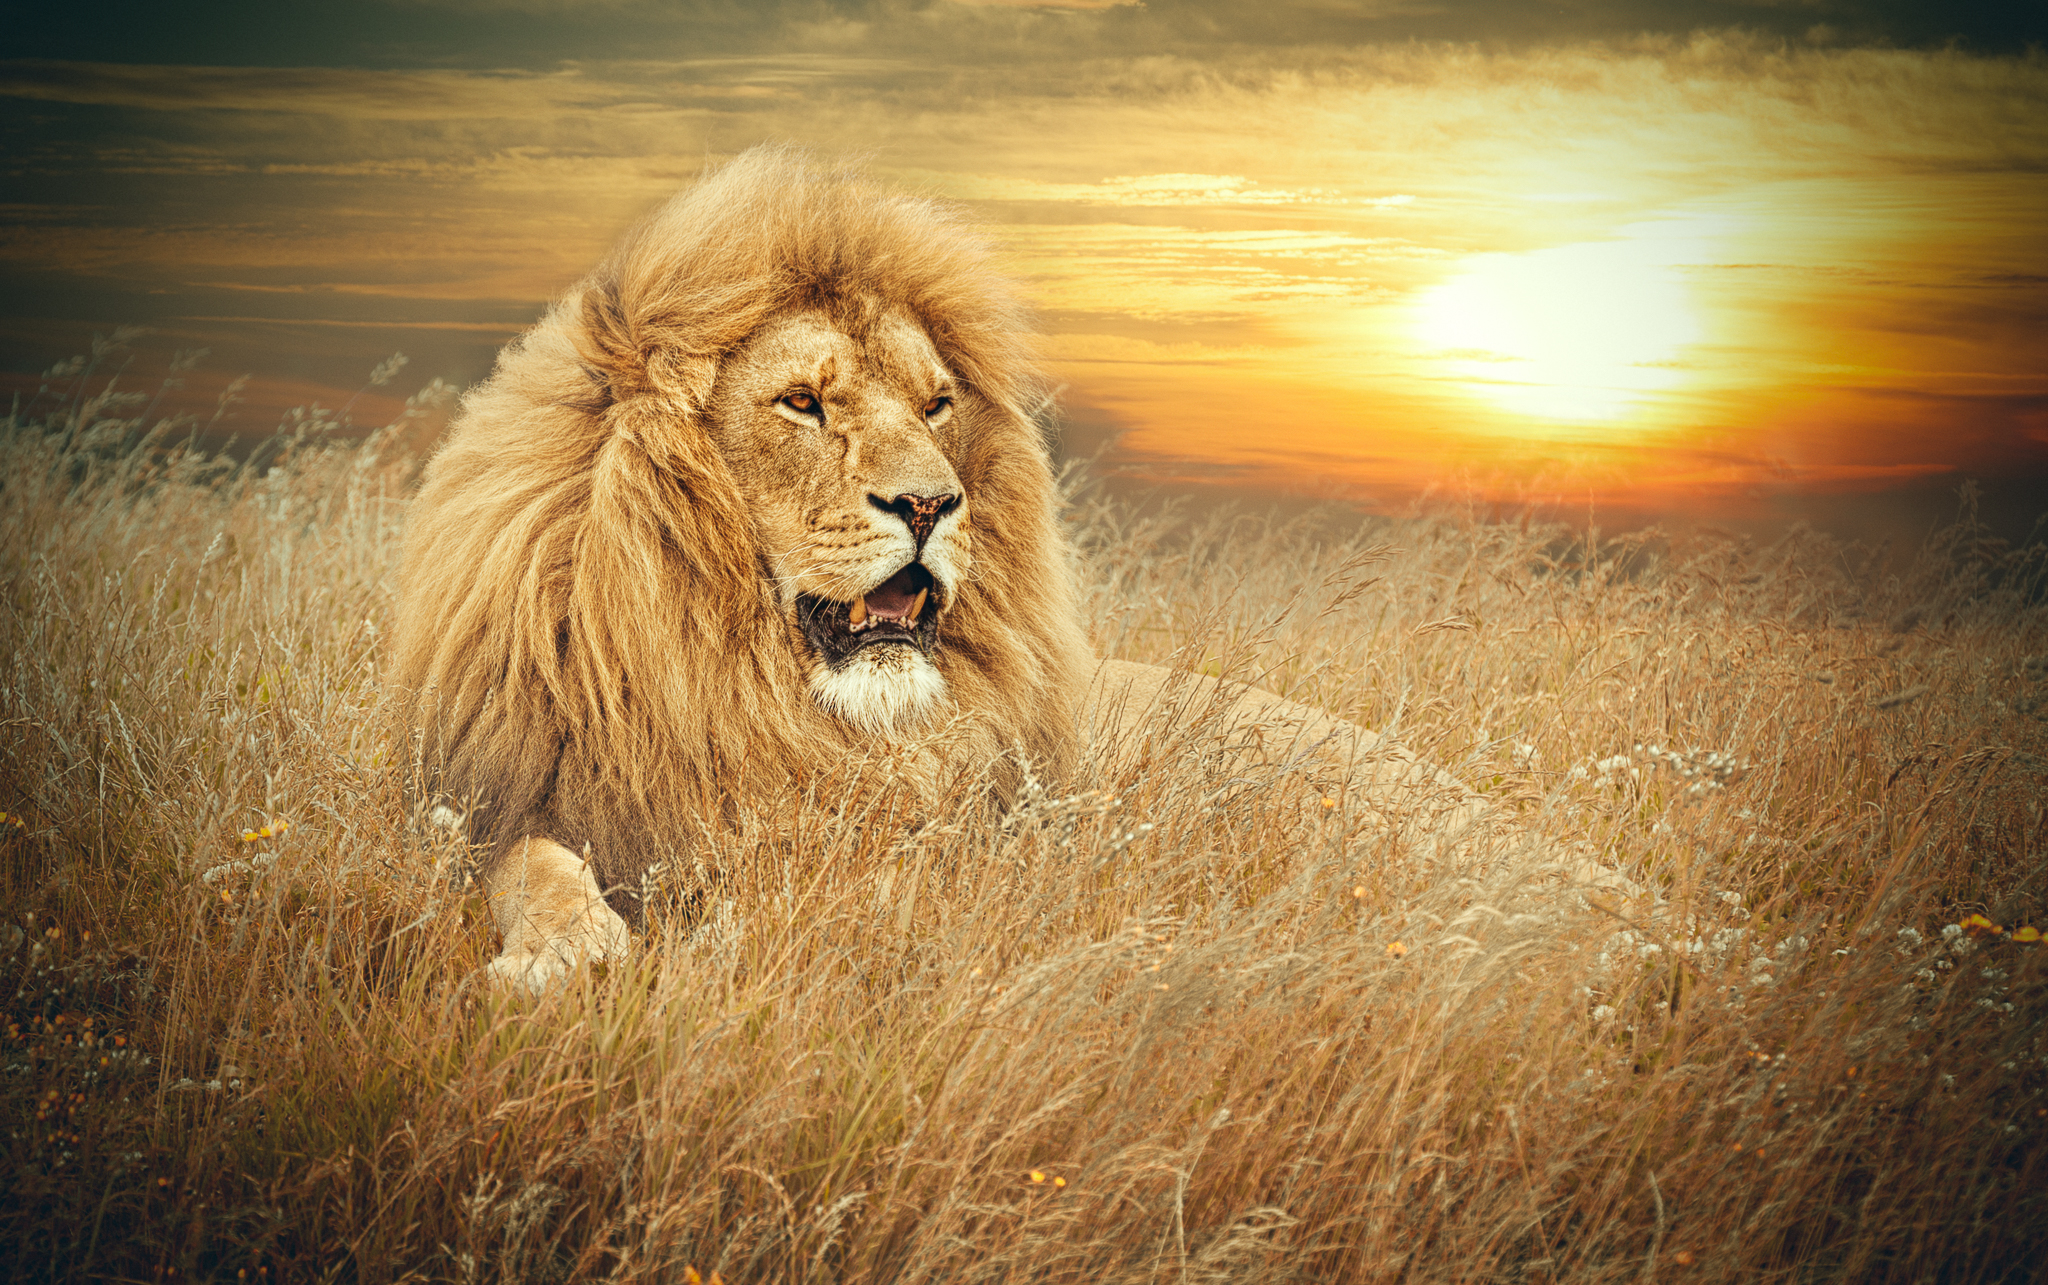 Lion art for sale on Fine Art America